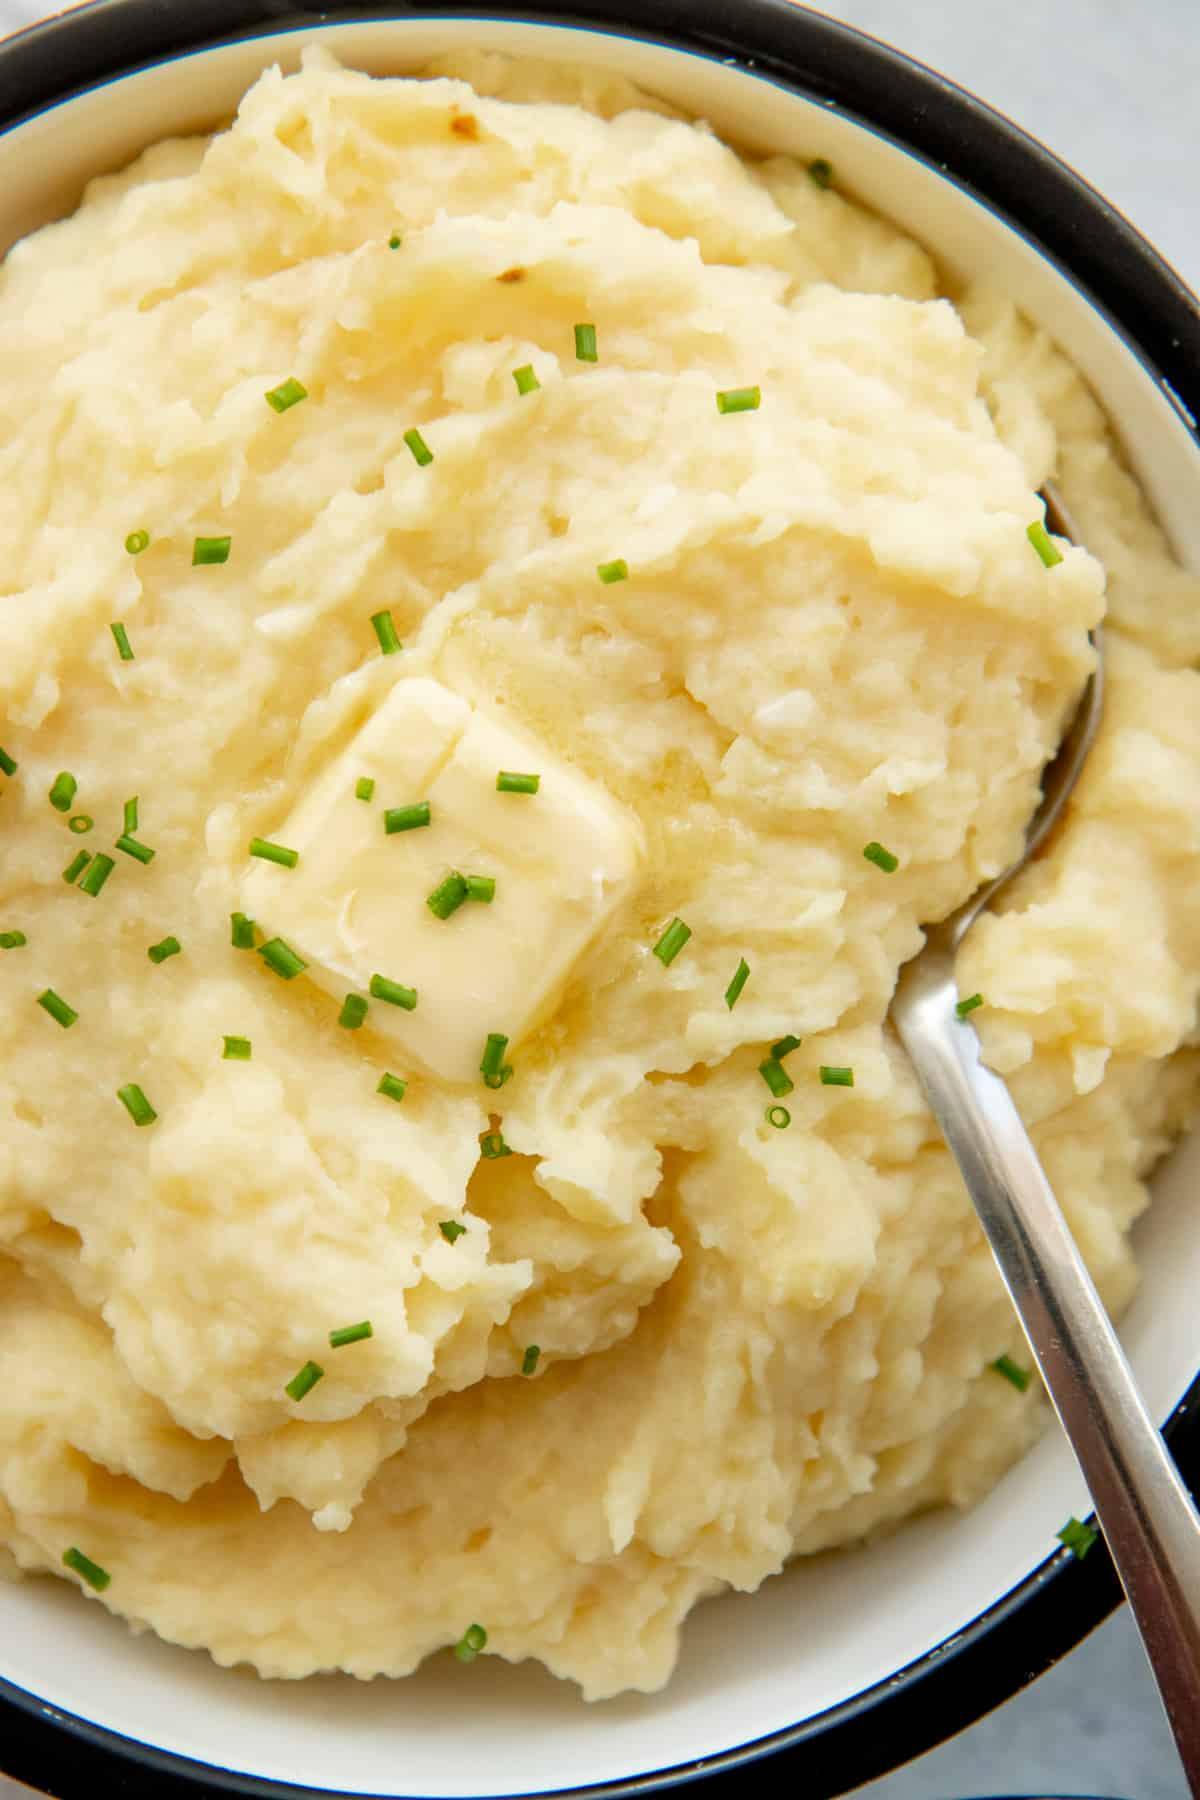 Tight view of creamy mashed potatoes in a bowl with a butter pat melting on top.